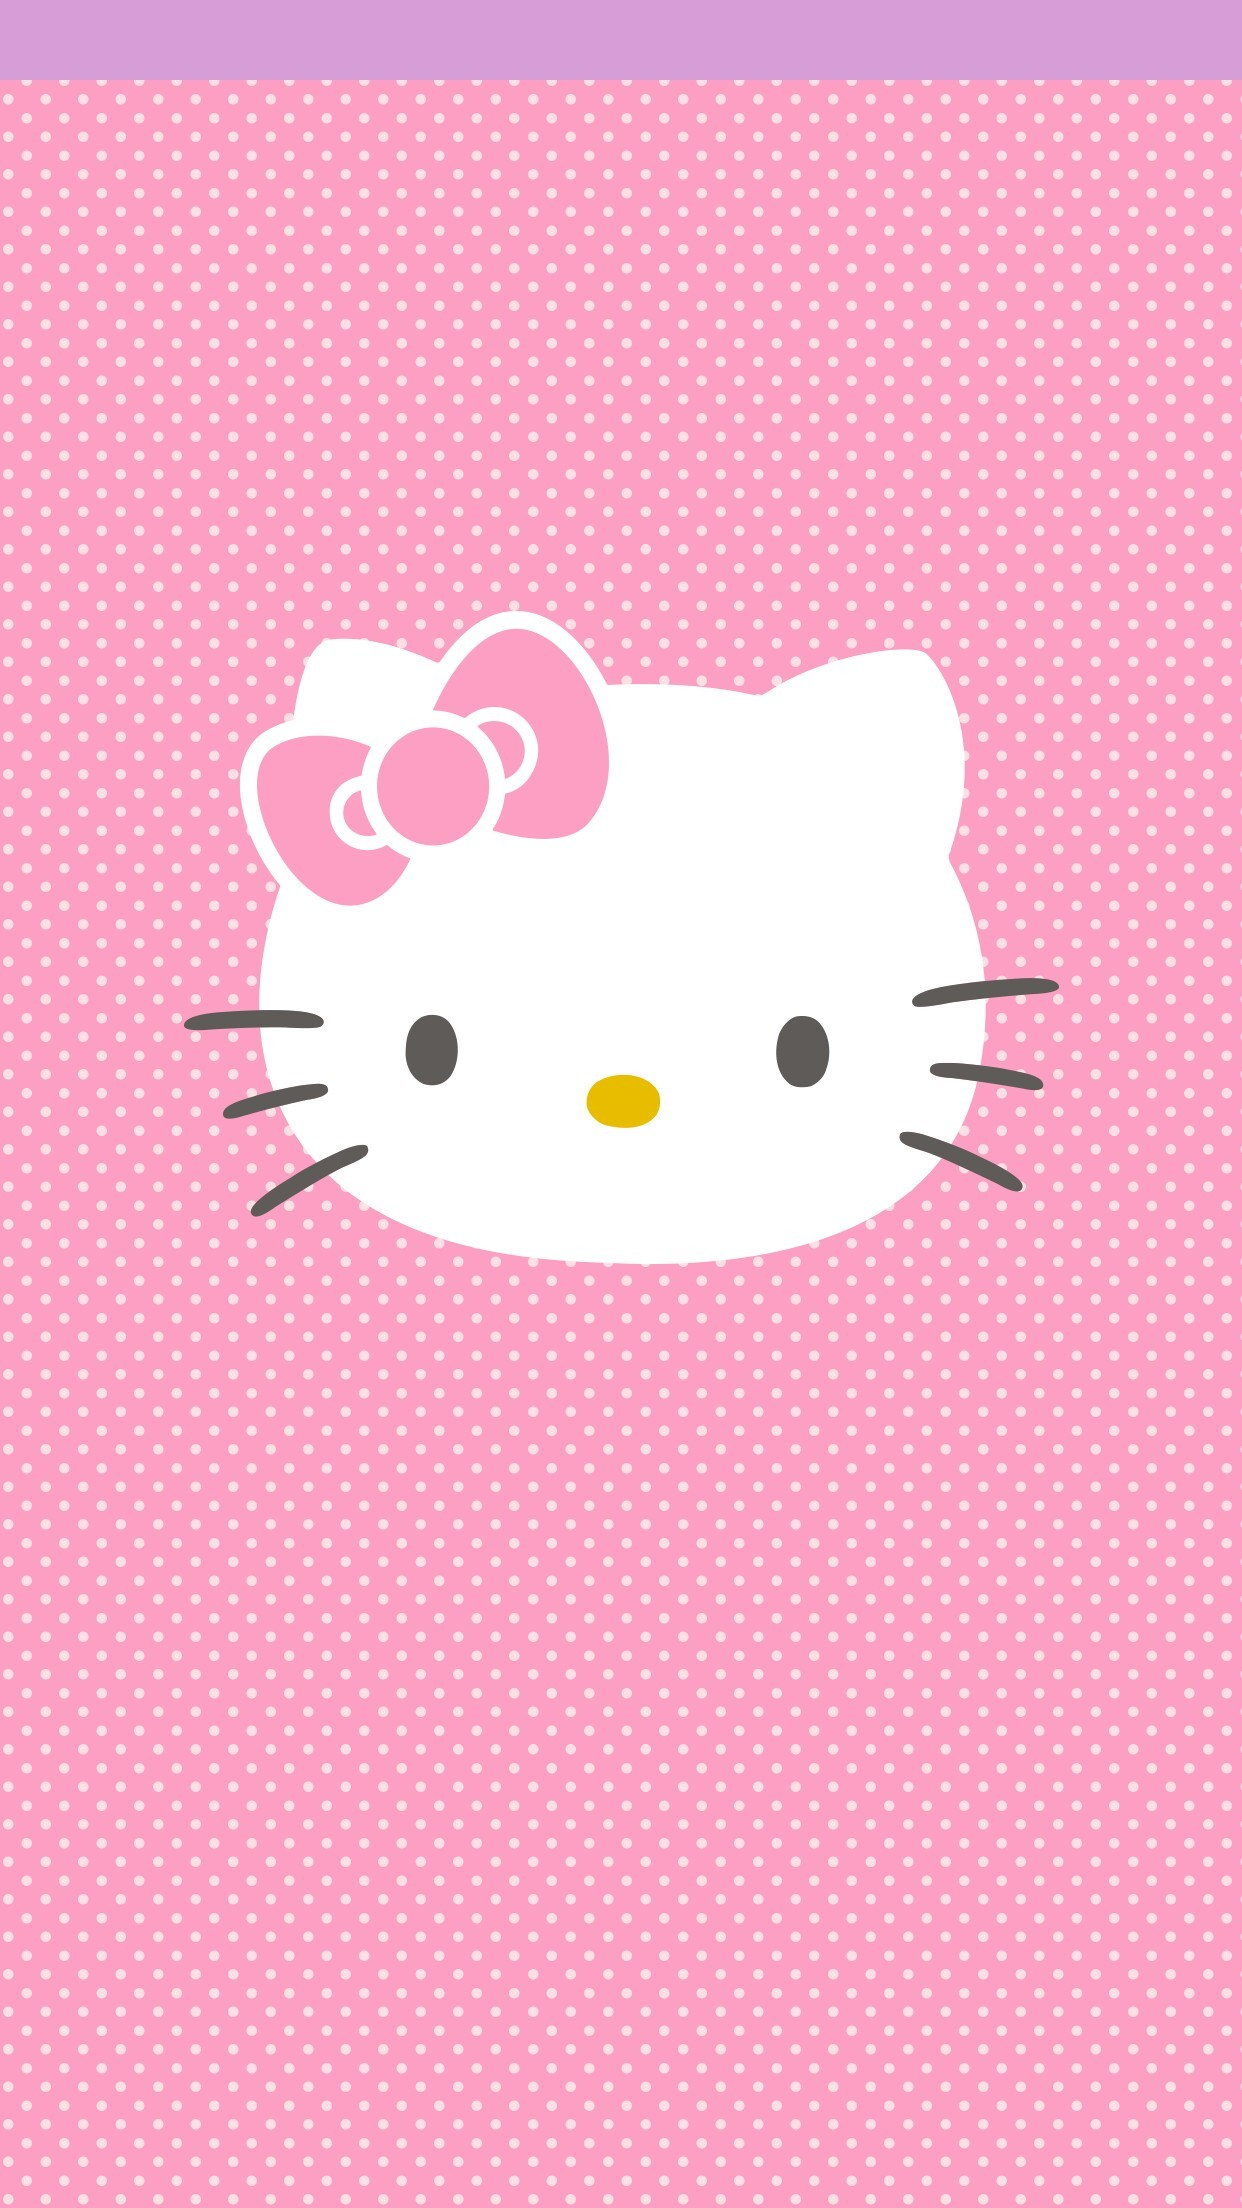 Cool Wallpaper High Resolution Hello Kitty - 968551-free-hello-kitty-wallpaper-pictures-1242x2208-download  Graphic_648497.jpg